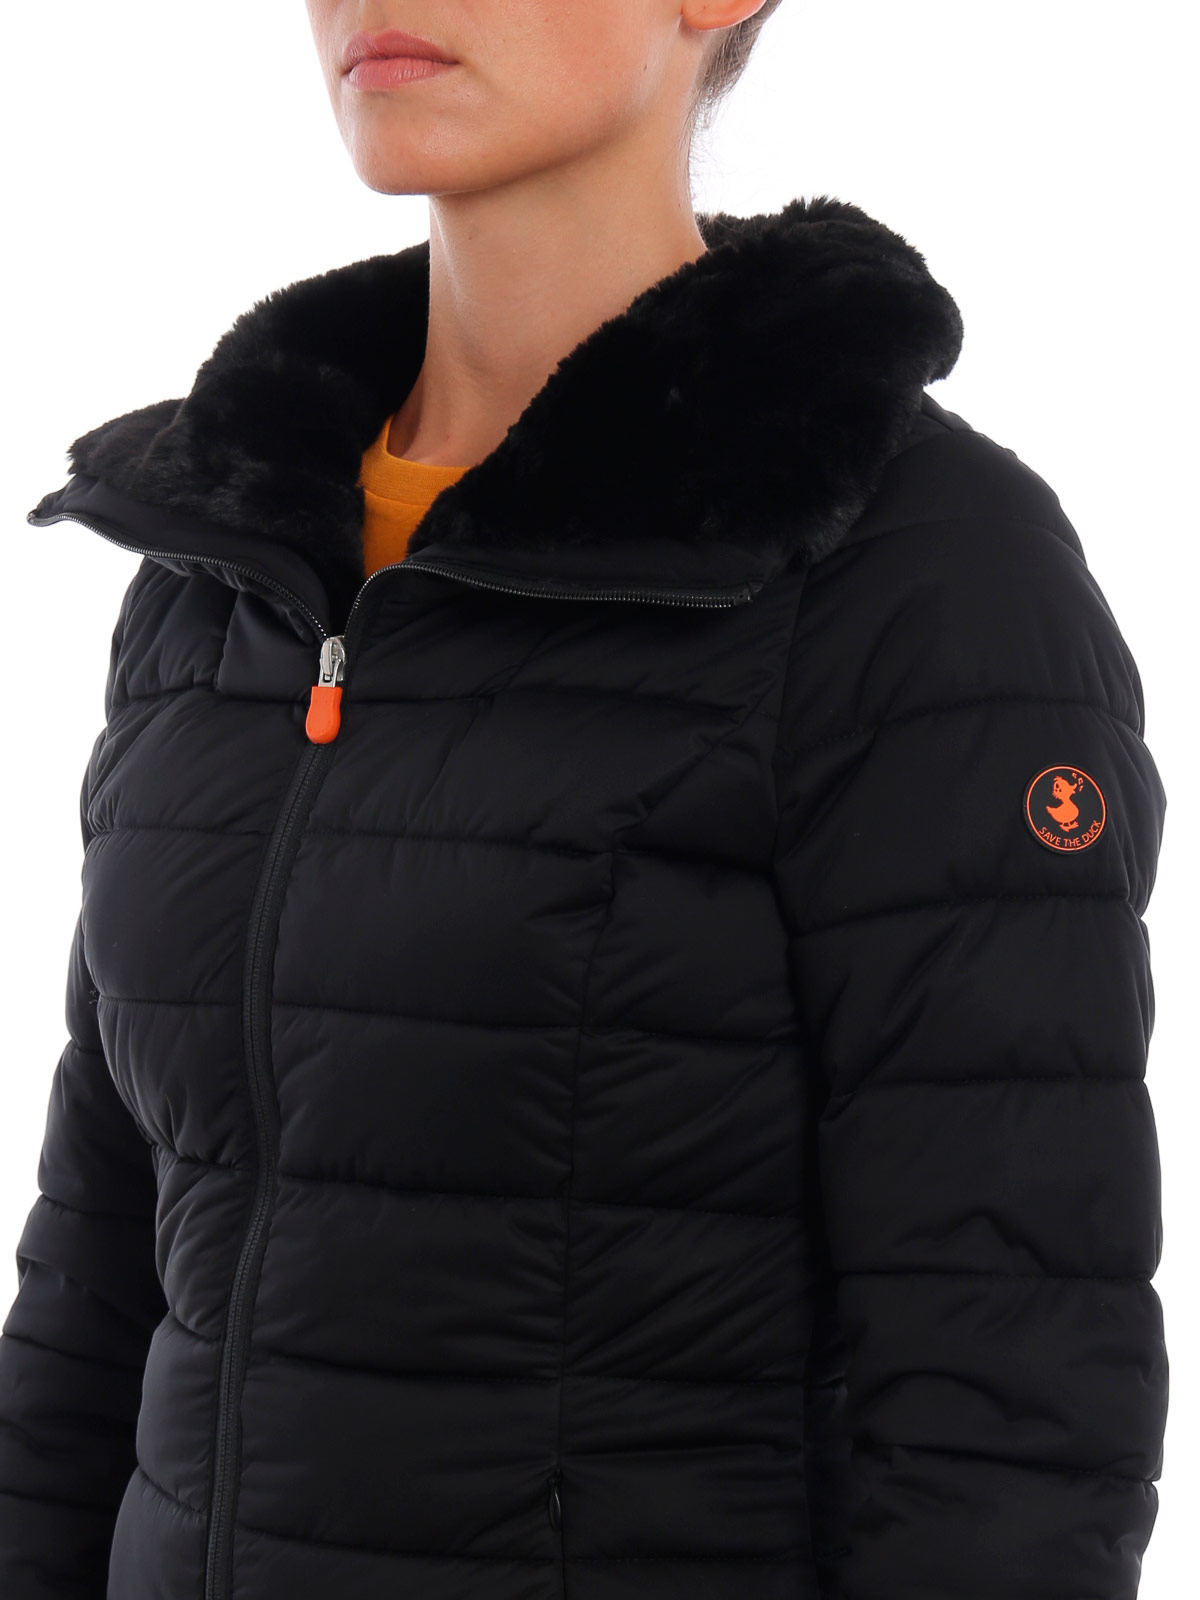 online store d952f ba6f8 SAVE THE DUCK Women's Puffer Jacket D4366W SOLD7